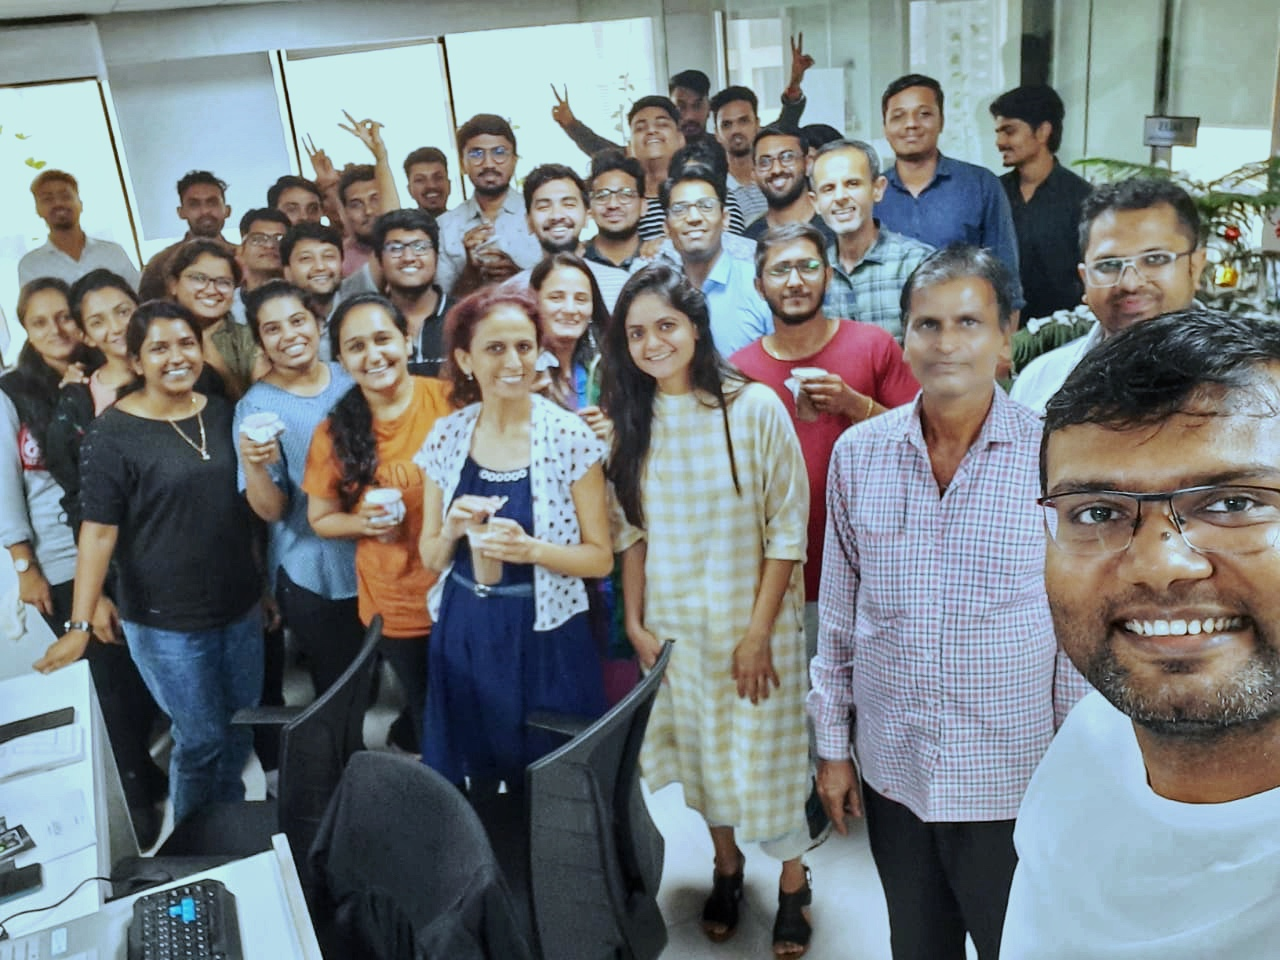 Our Company Work Culture: You're Family at August Infotech